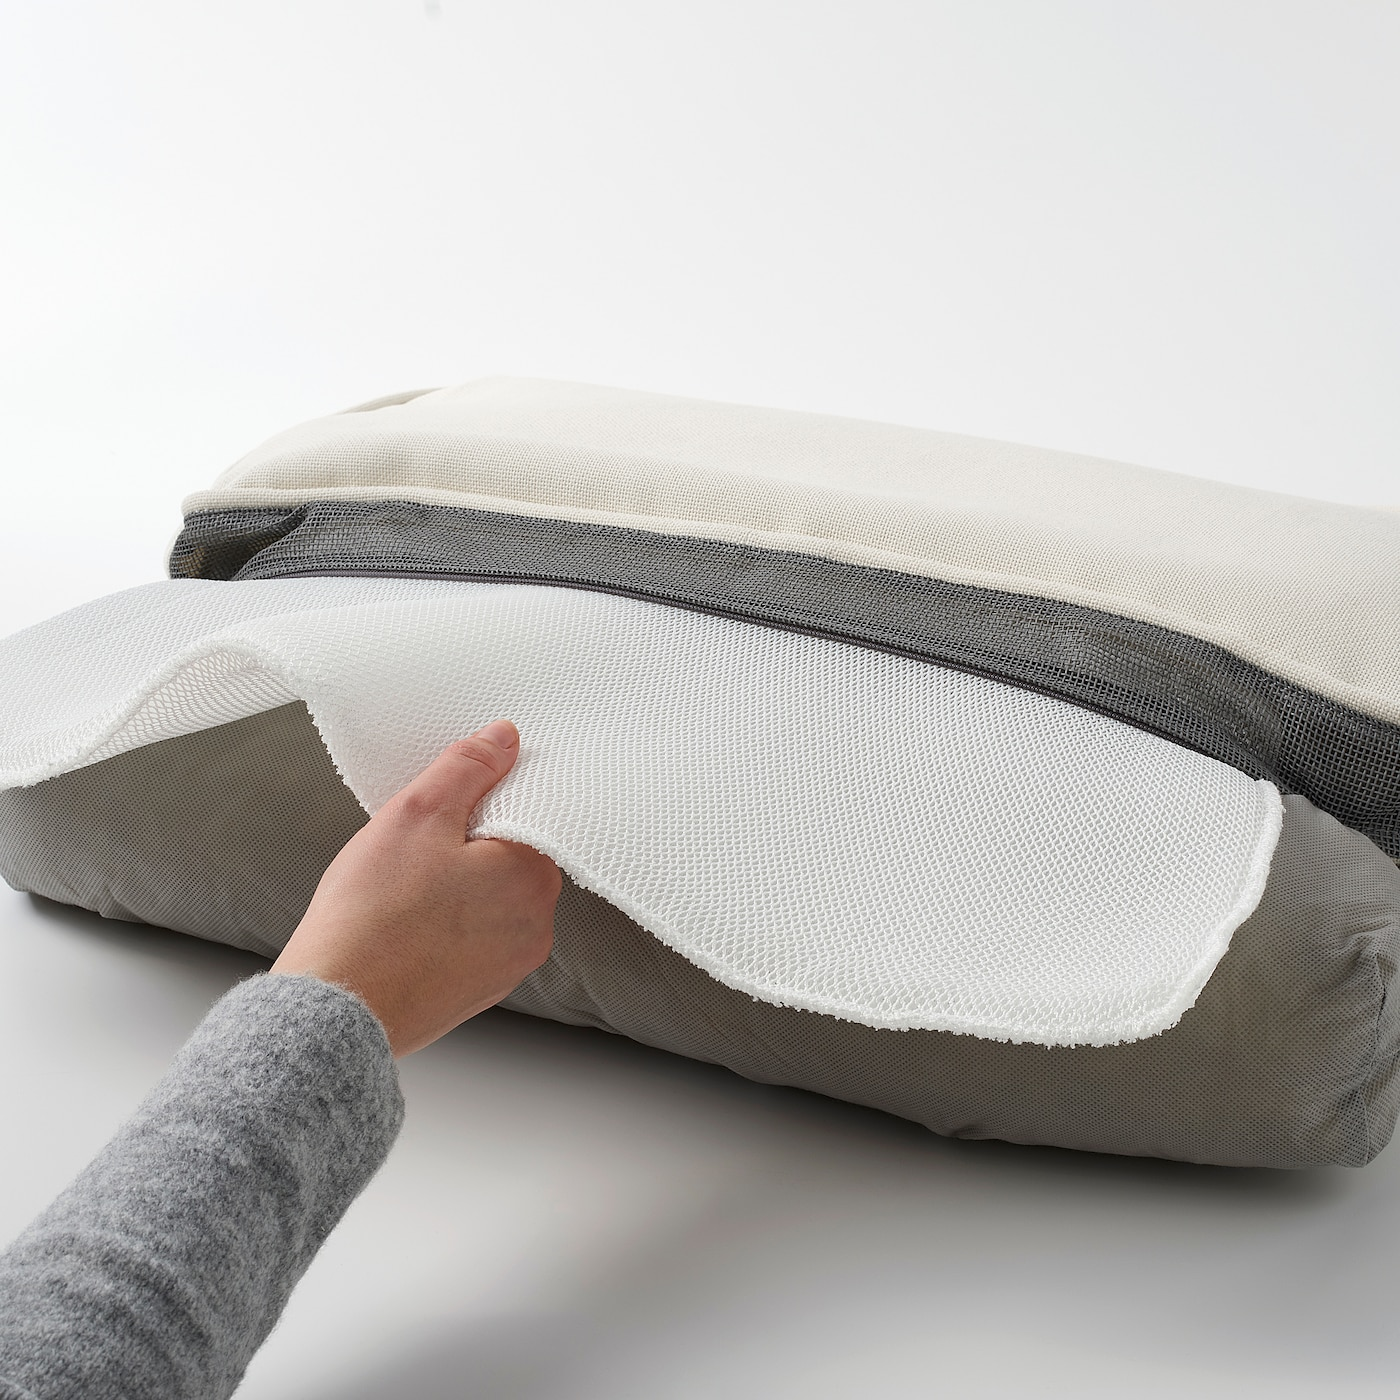 cushion for high-backed chair block stripes in anthracite // white pad Garden chair cushion seat